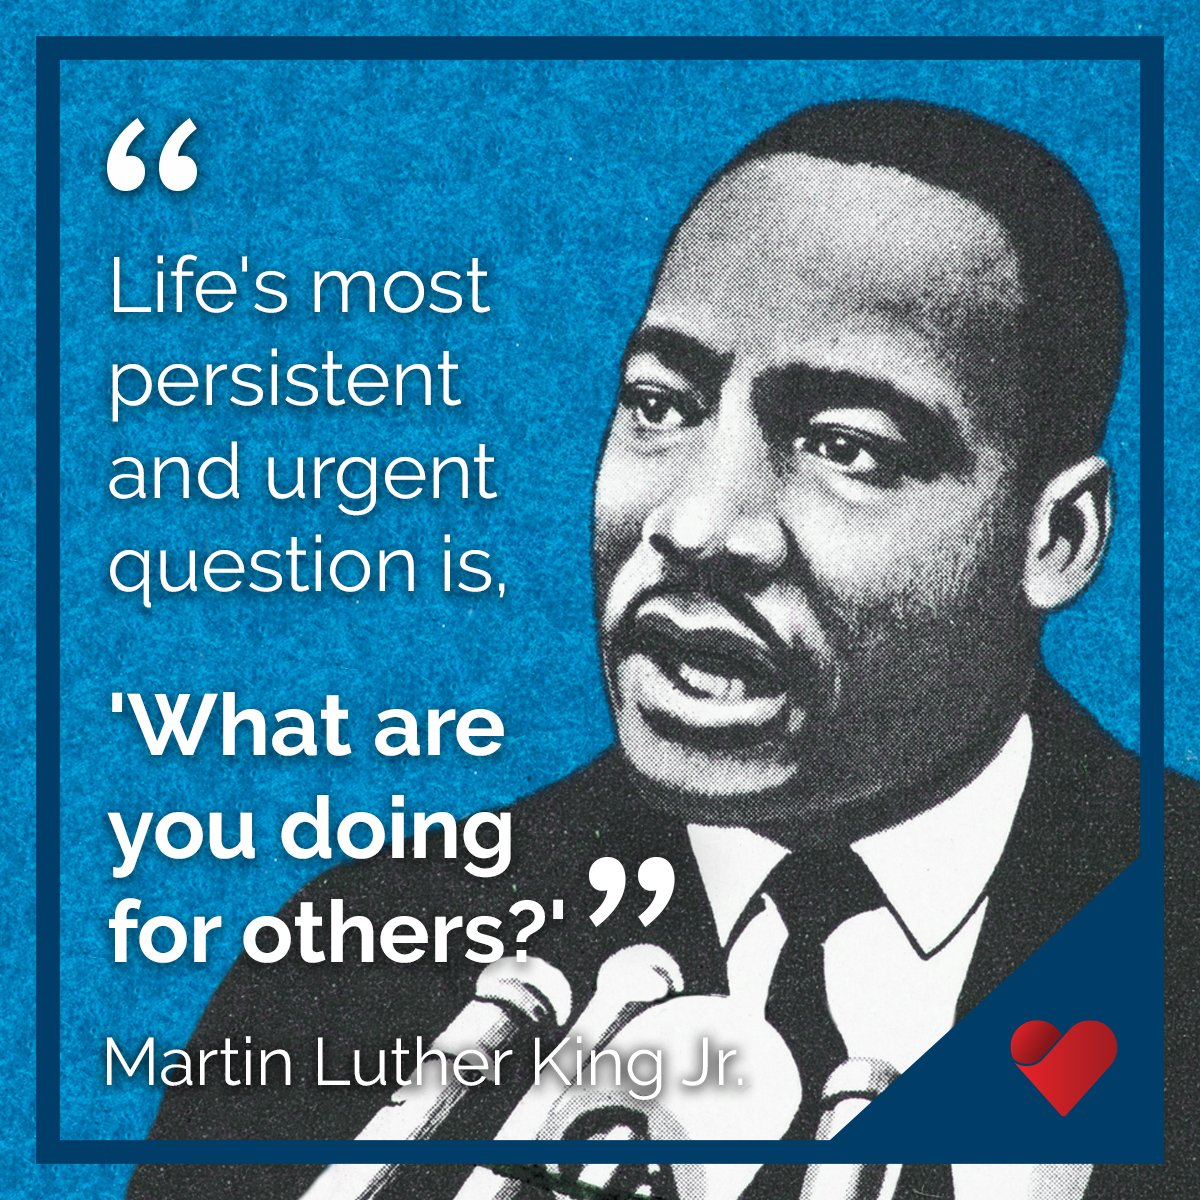 Today we honor and thank Martin Luther King Jr. for inspiring future generations to lead with their hearts, serve others, and follow their dreams. #MLKDay